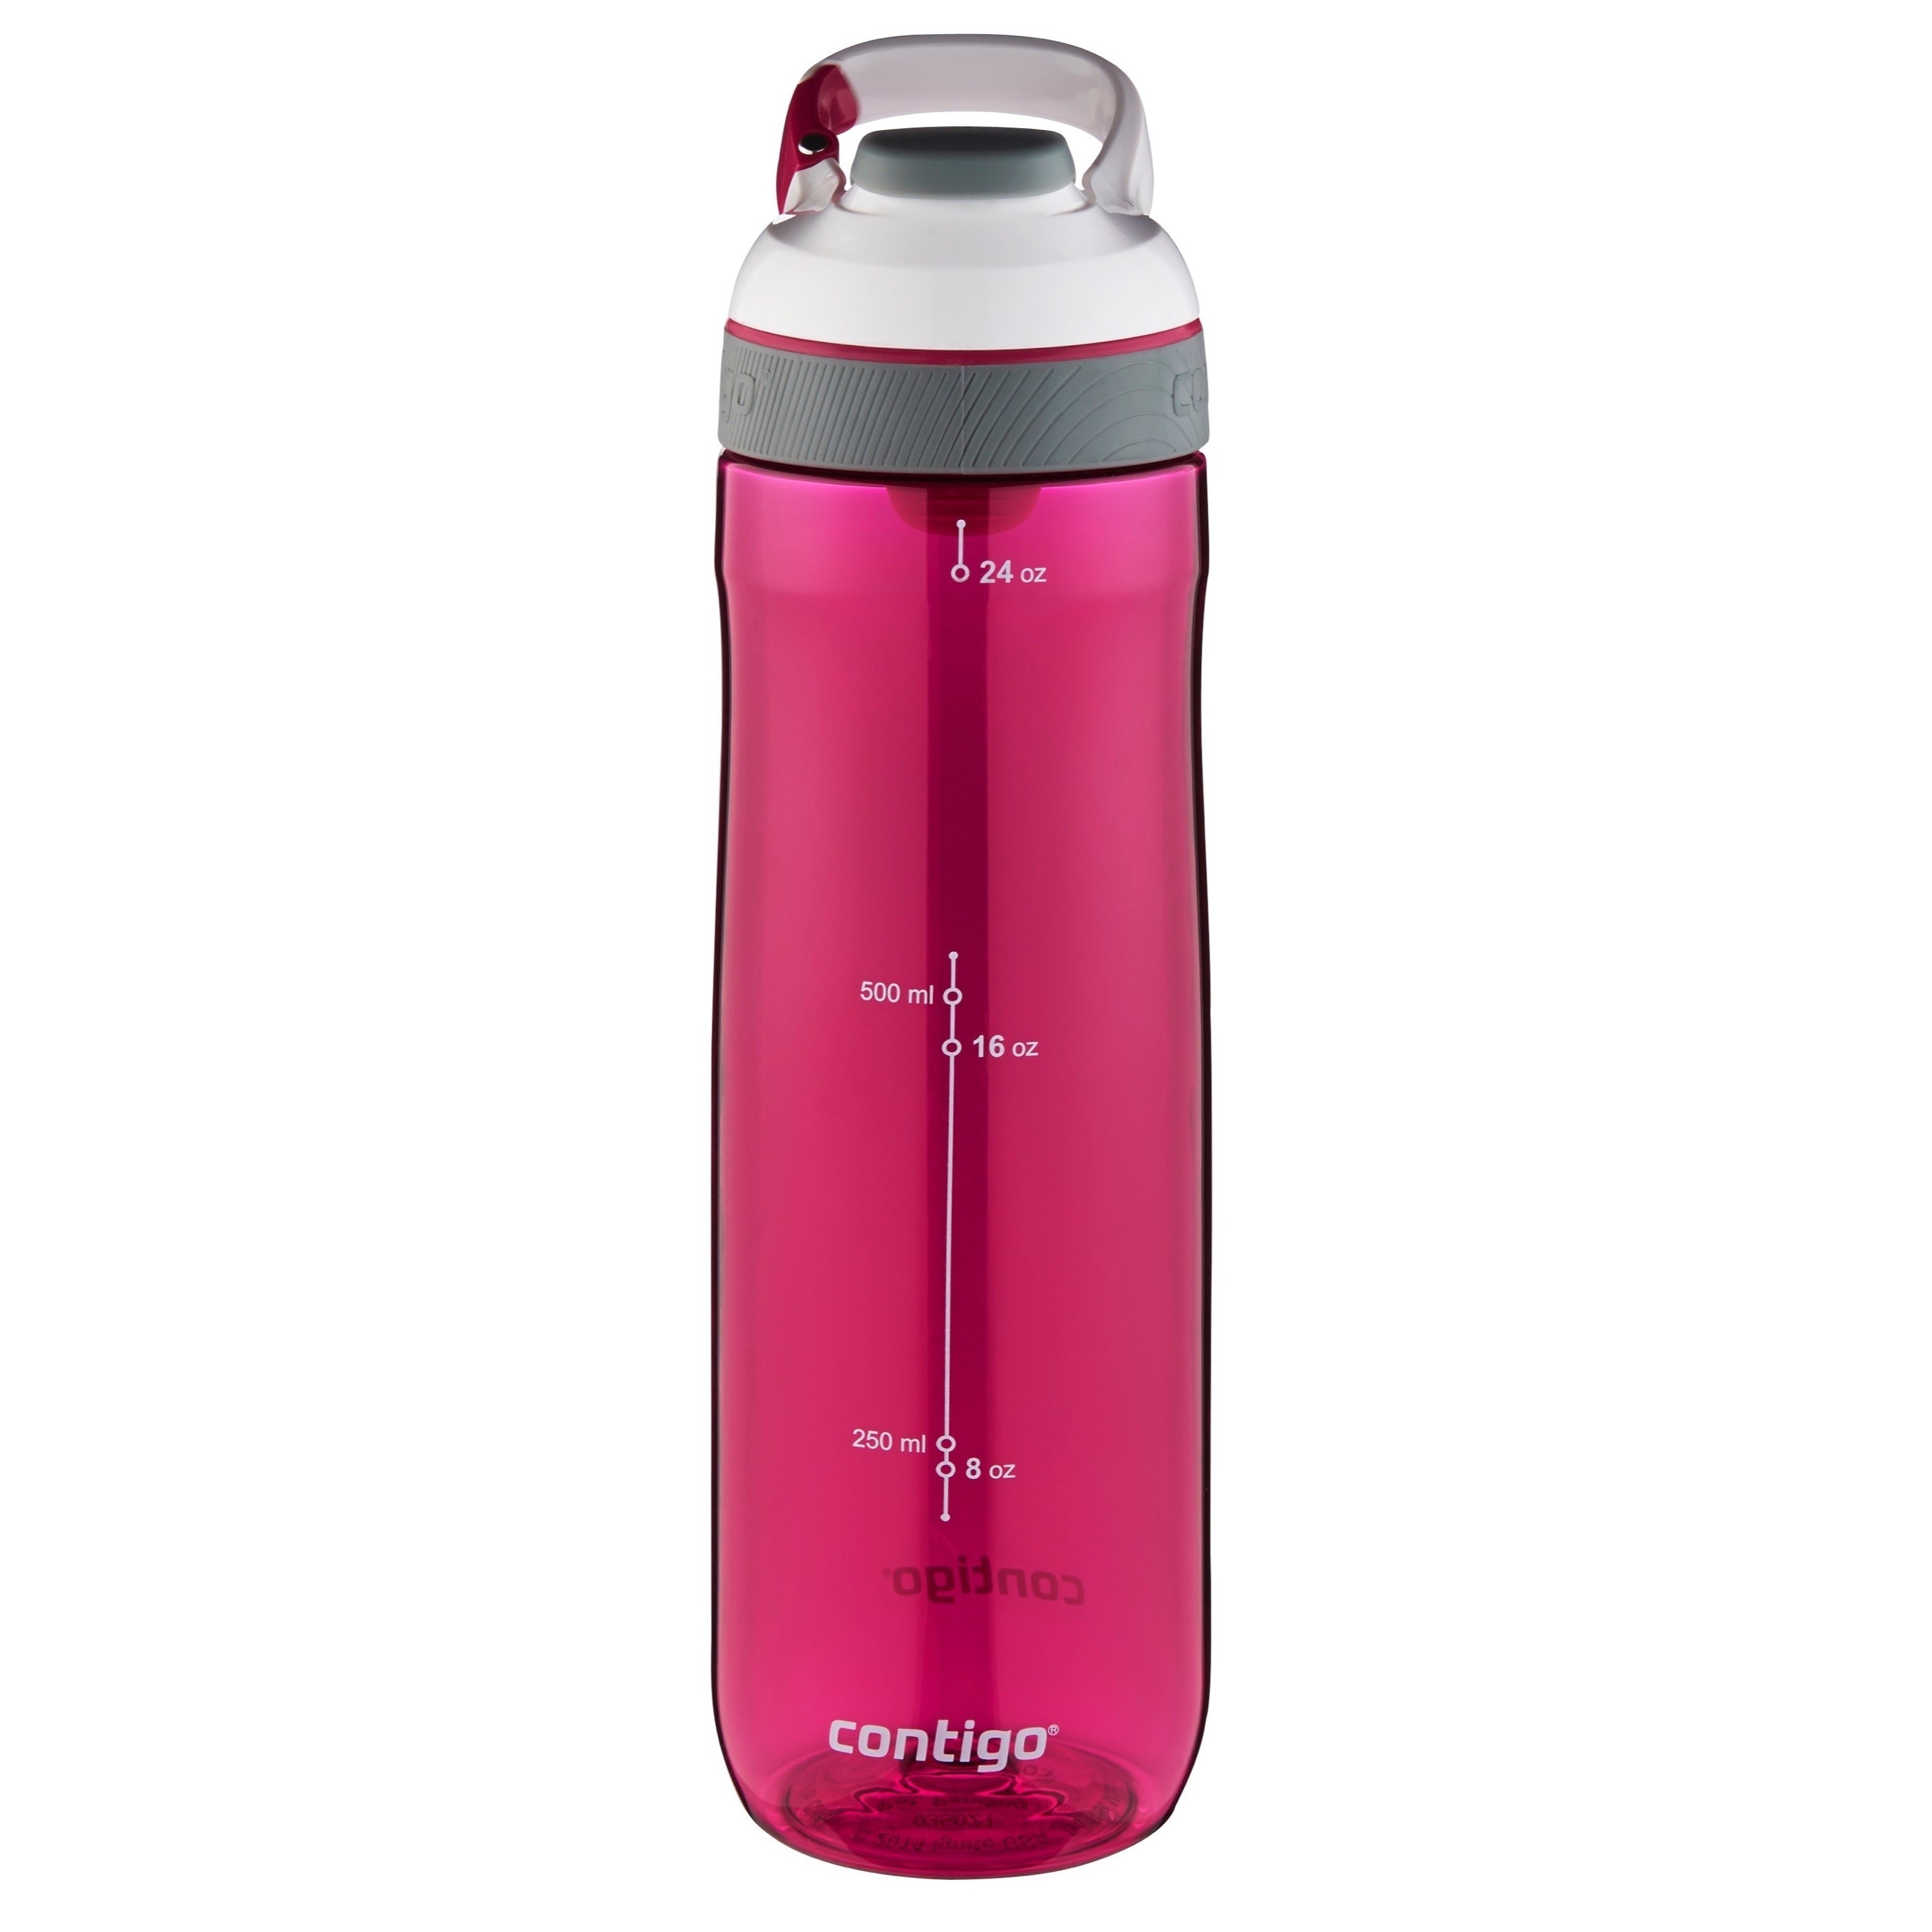 the water bottle in pink